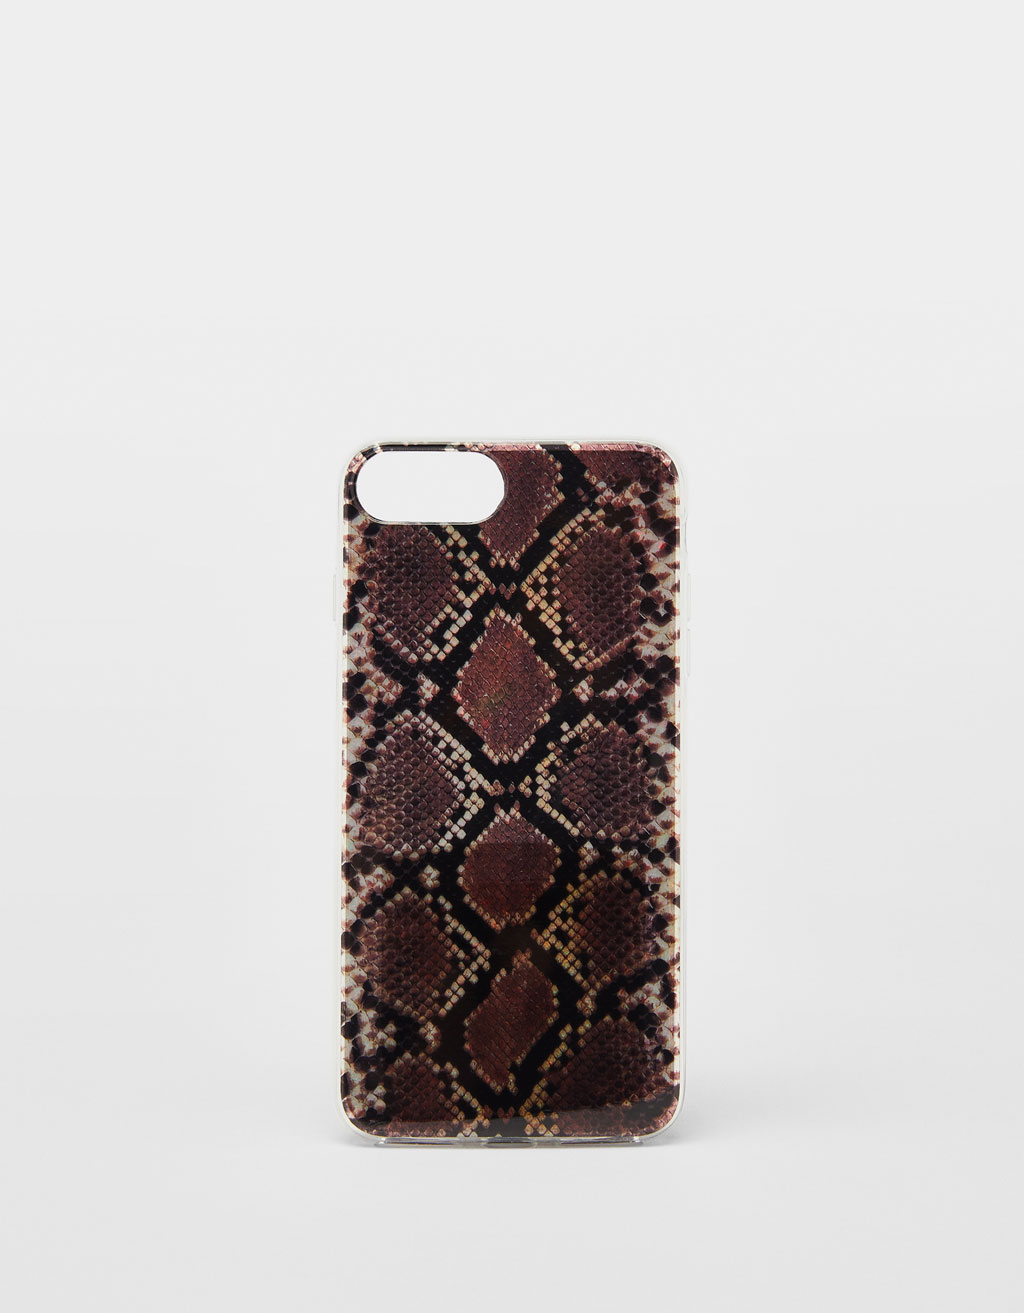 Carcassa serp iPhone 6 plus/7 plus/8 plus